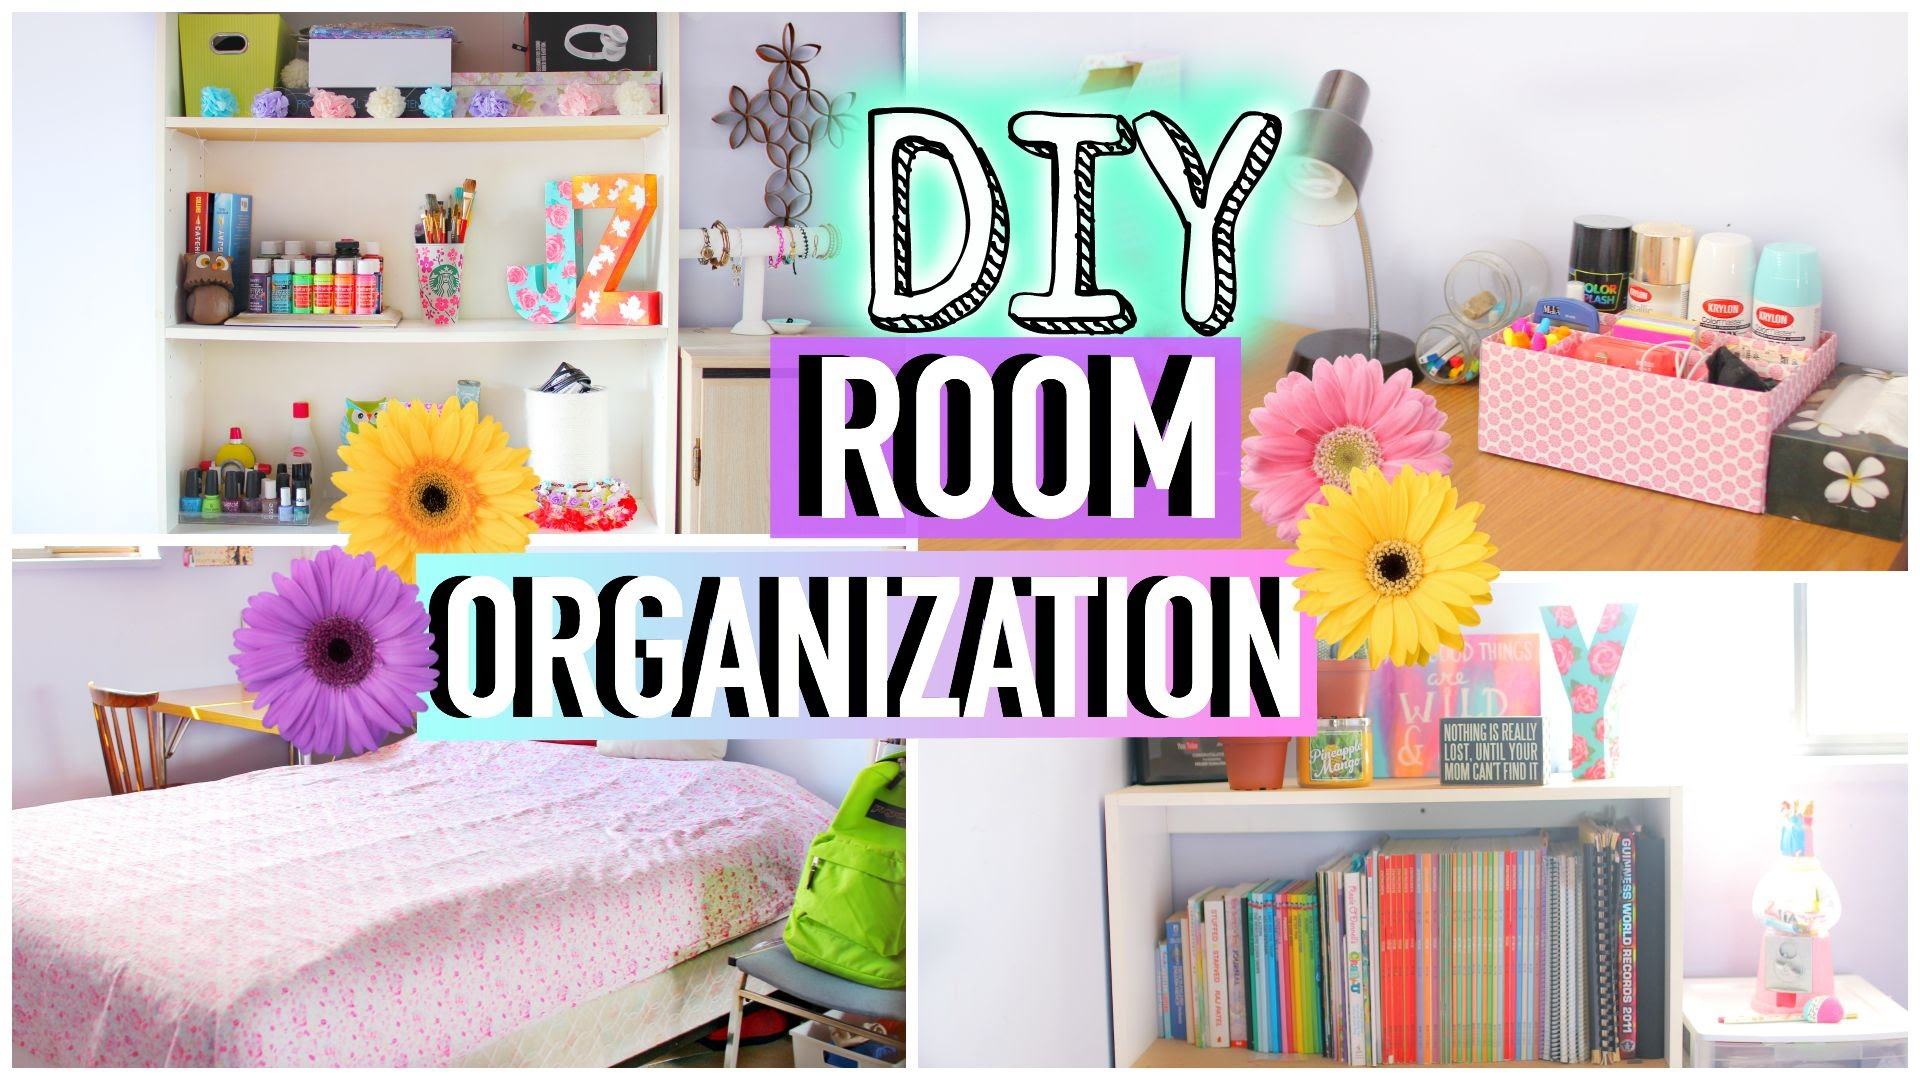 Diy room organization and storage ideas how to clean Diy storage ideas for small bedrooms